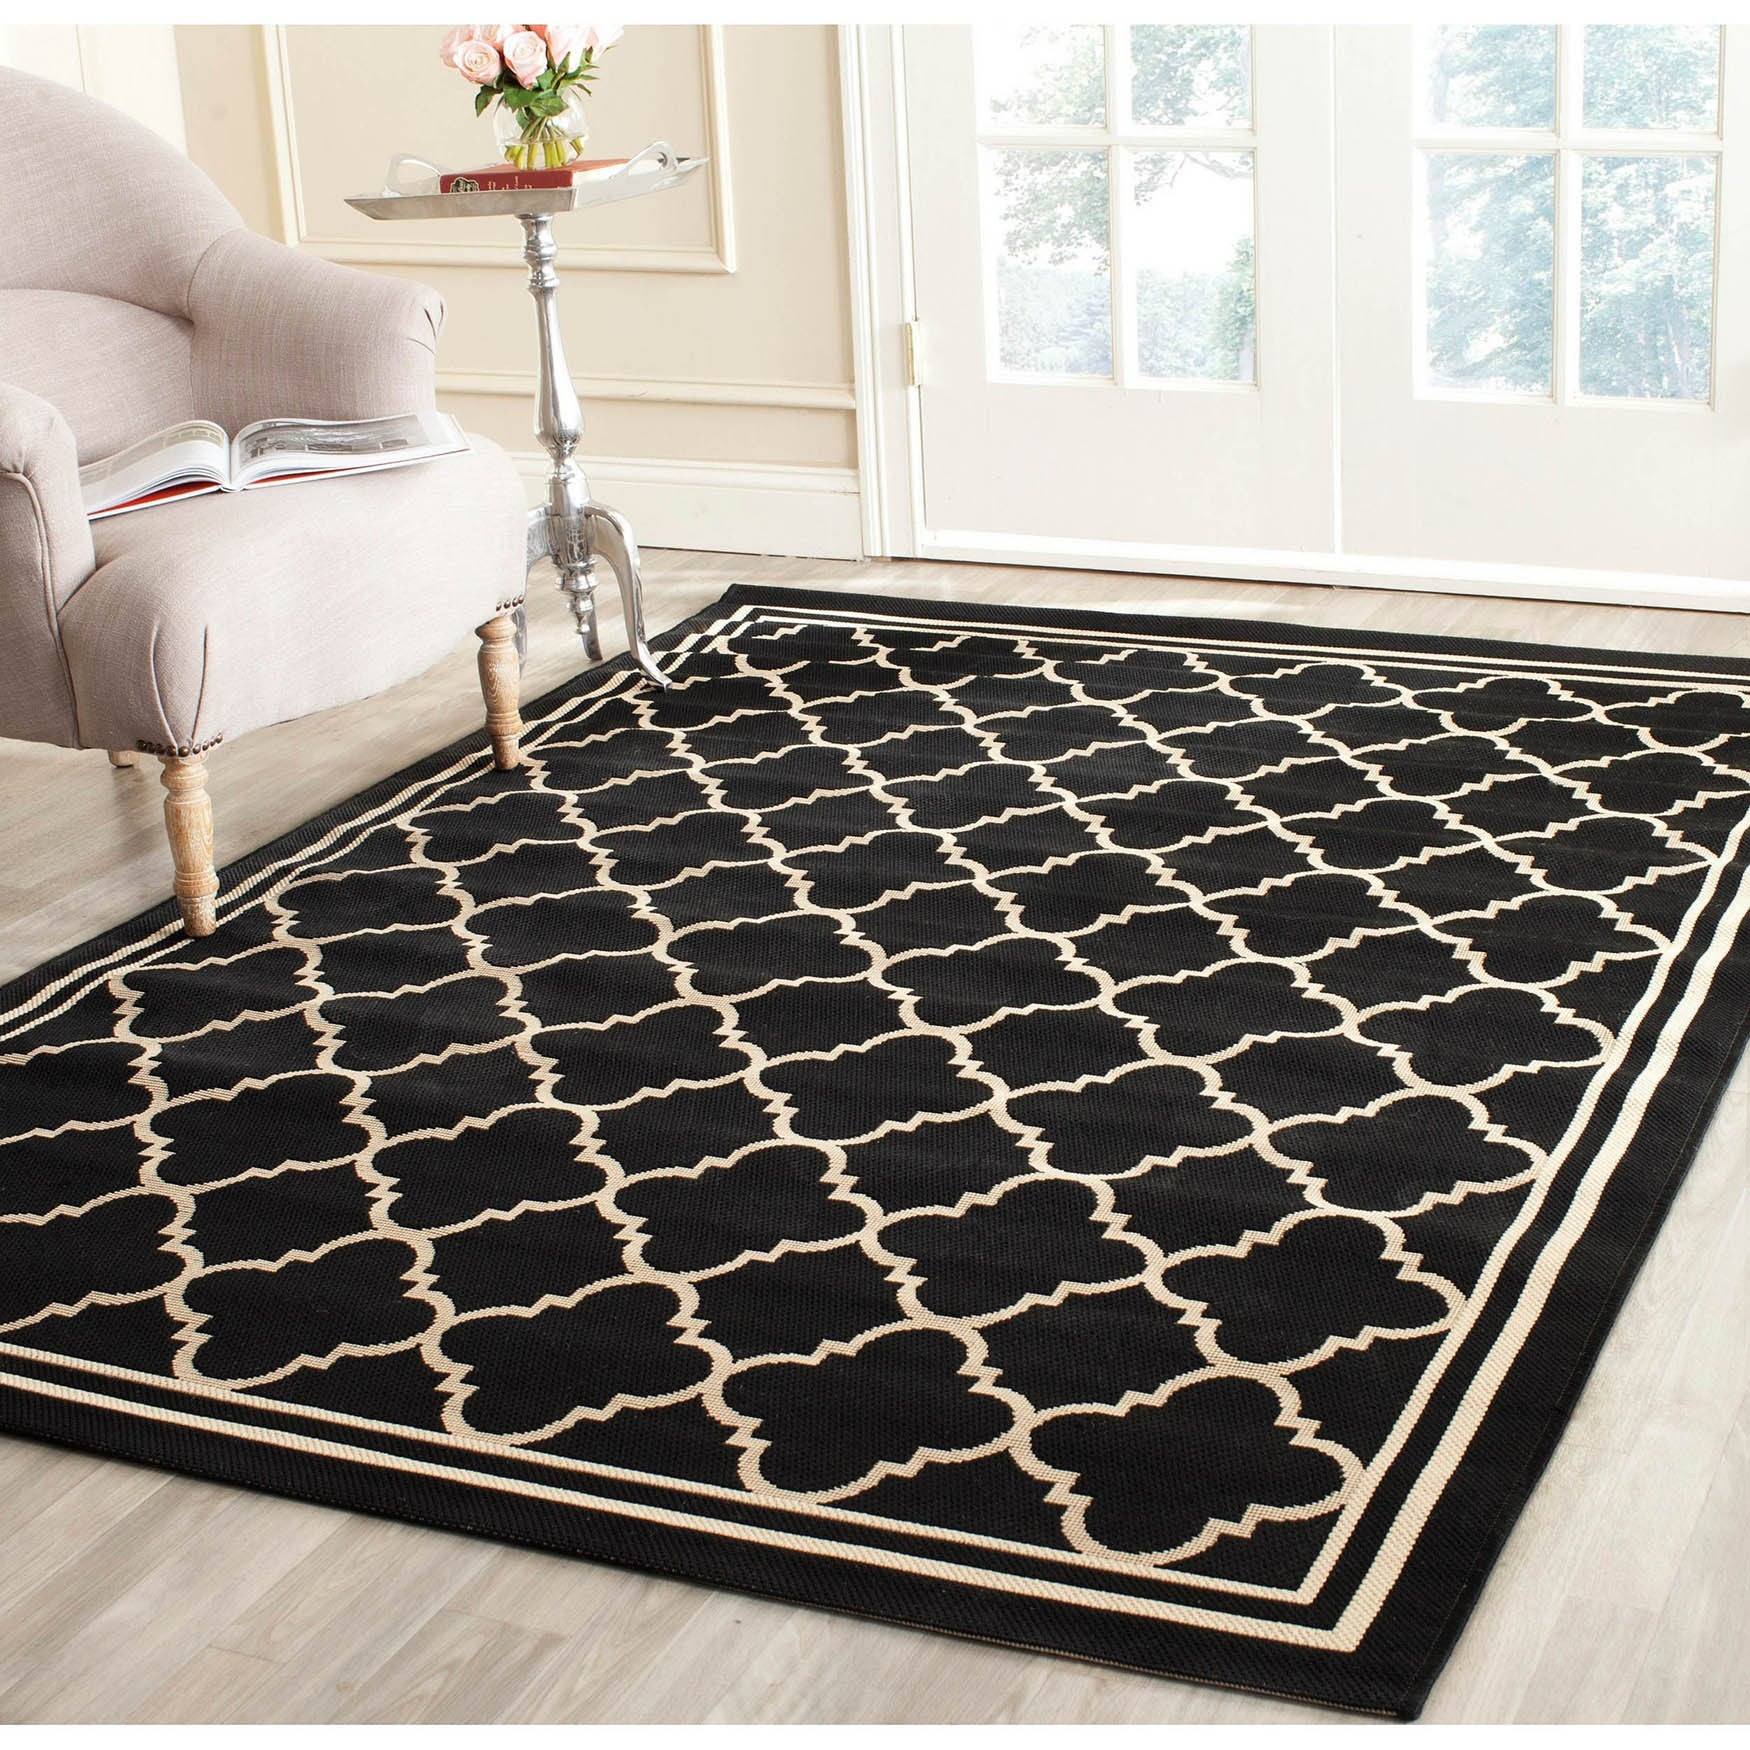 Safavieh Poolside Black/ Beige Indoor Outdoor Rug (6'7 Square) at Sears.com